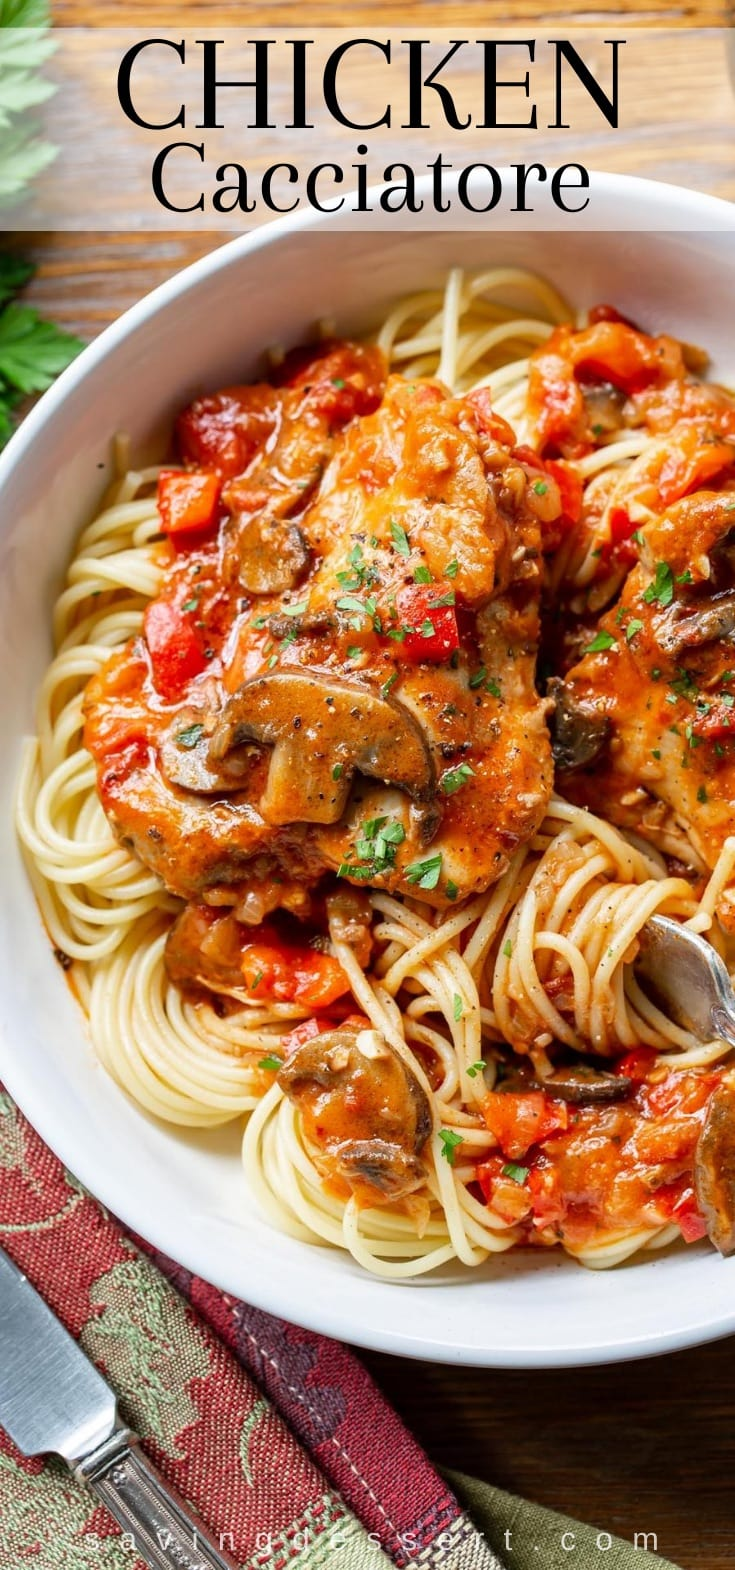 A bowl of spaghetti topped with chicken cacciatore and fresh parsley